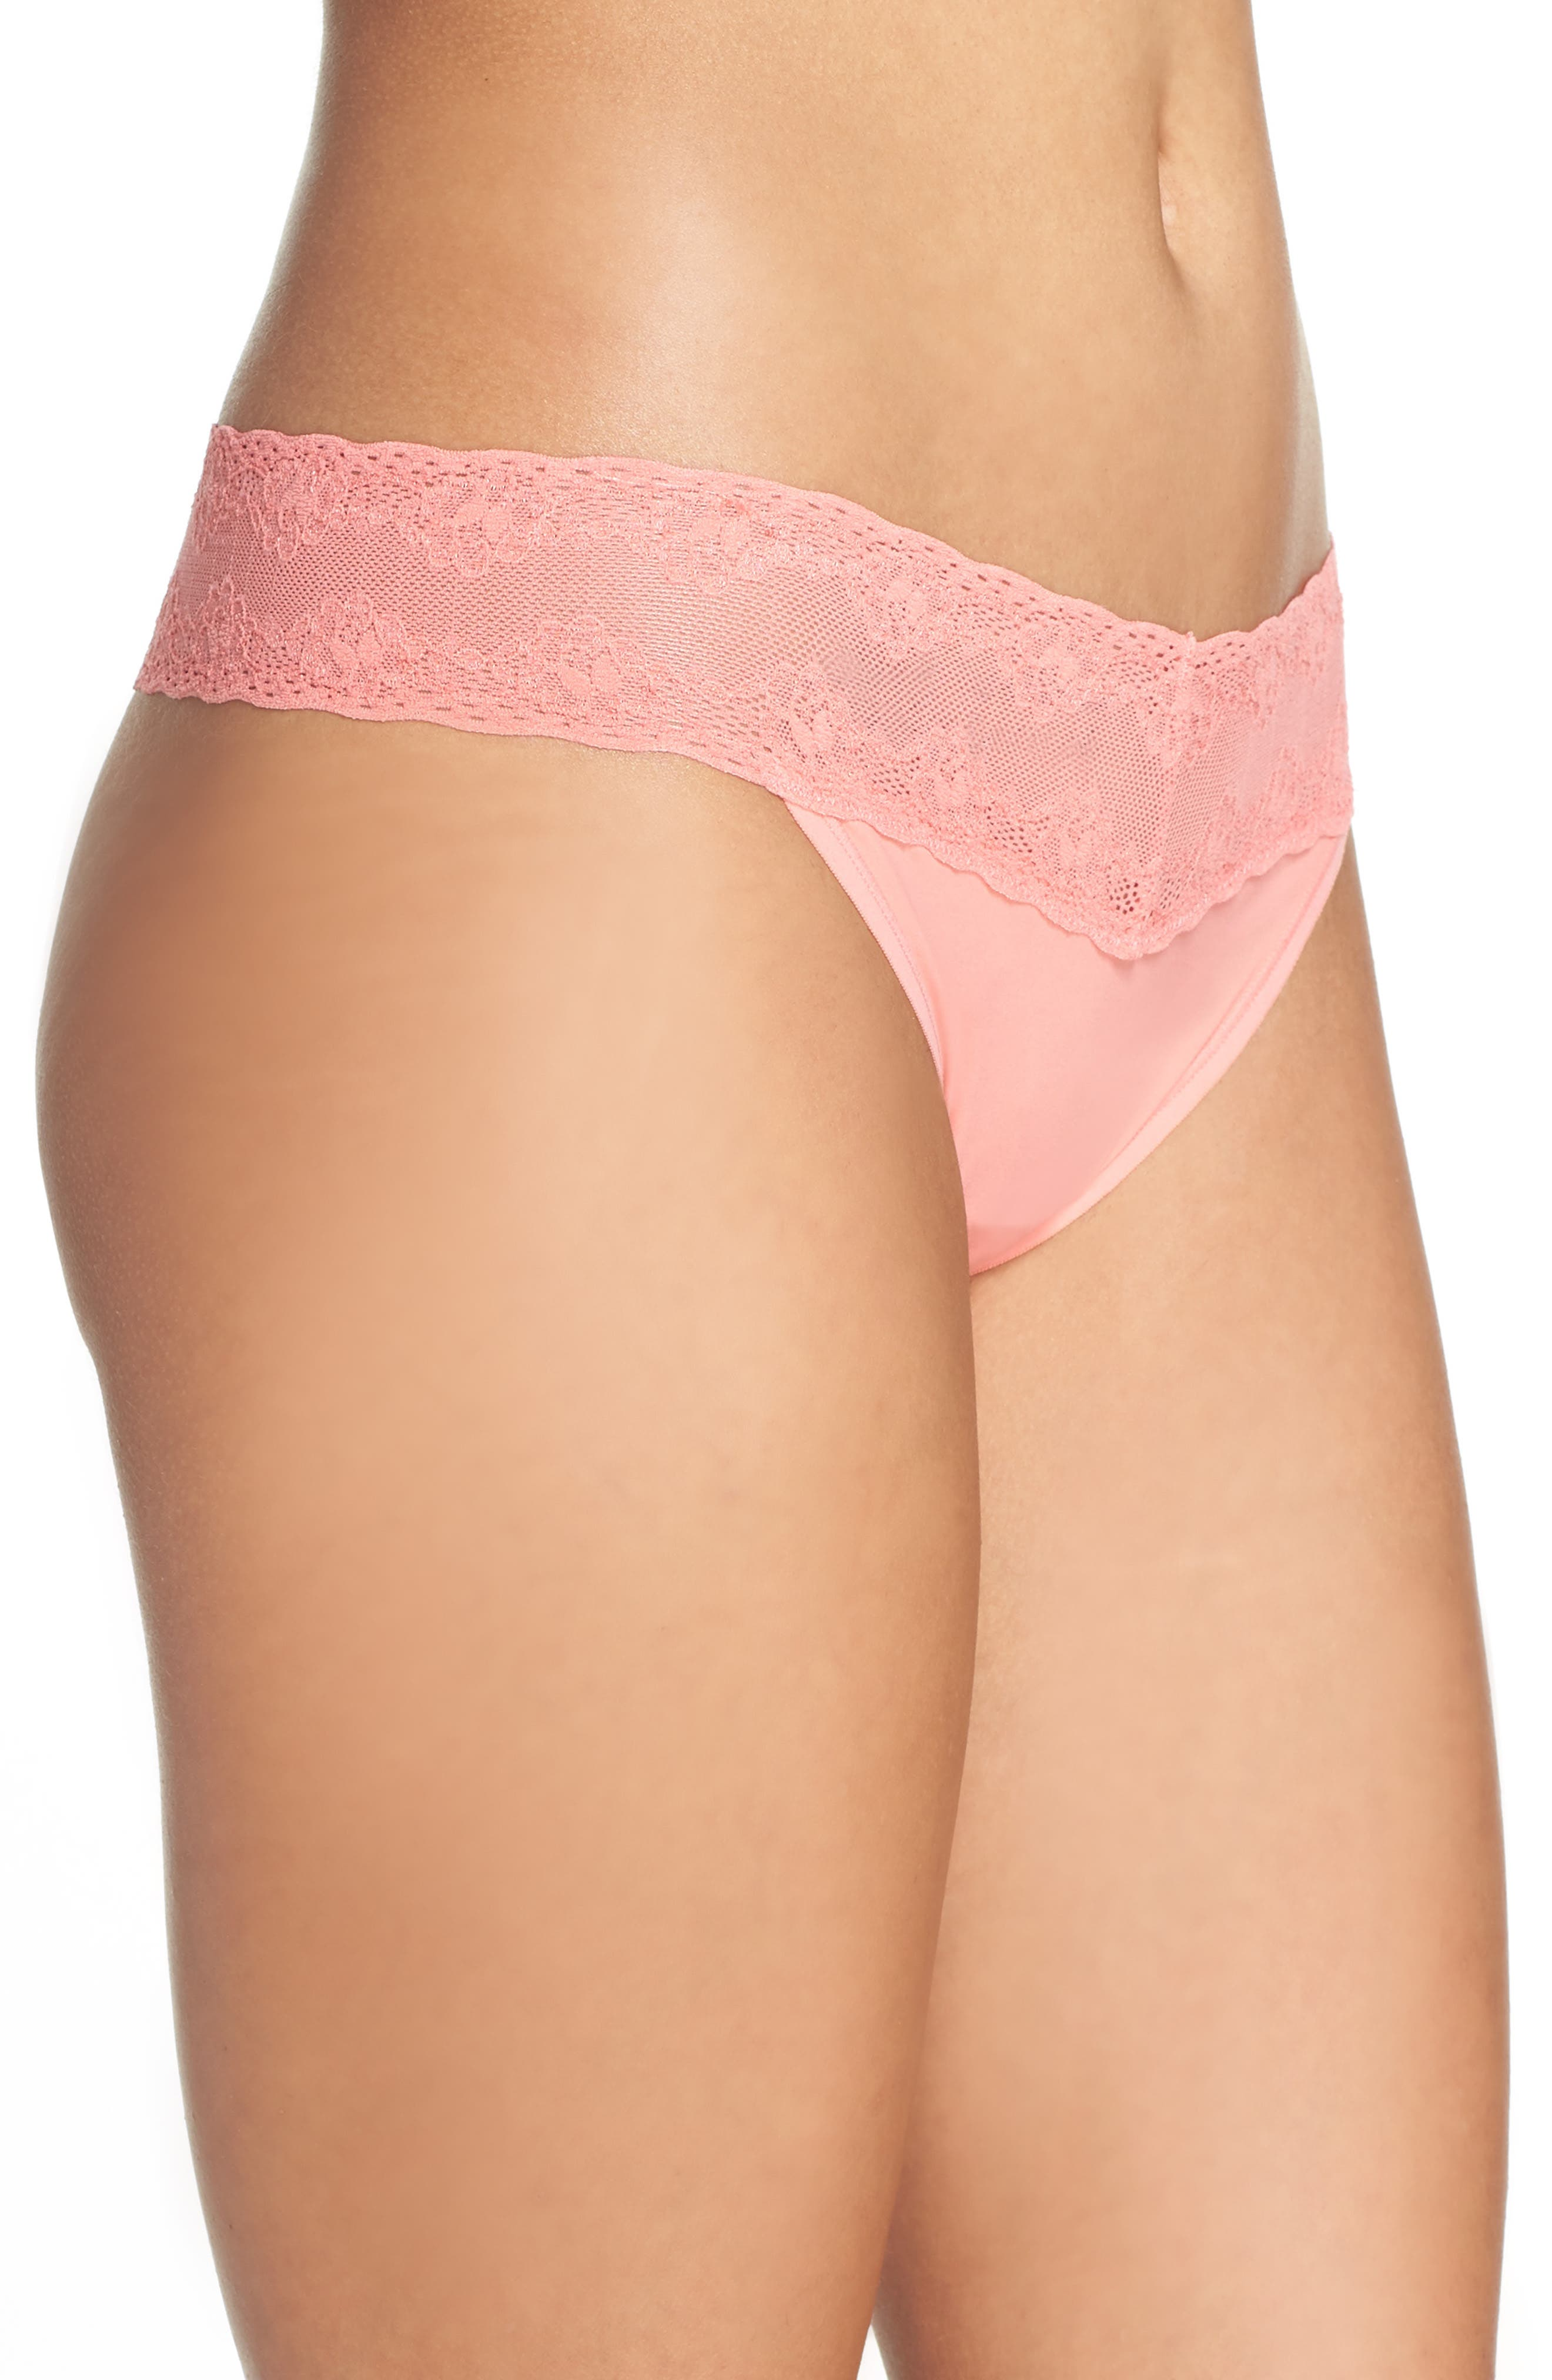 Bliss Perfection Thong,                             Alternate thumbnail 292, color,